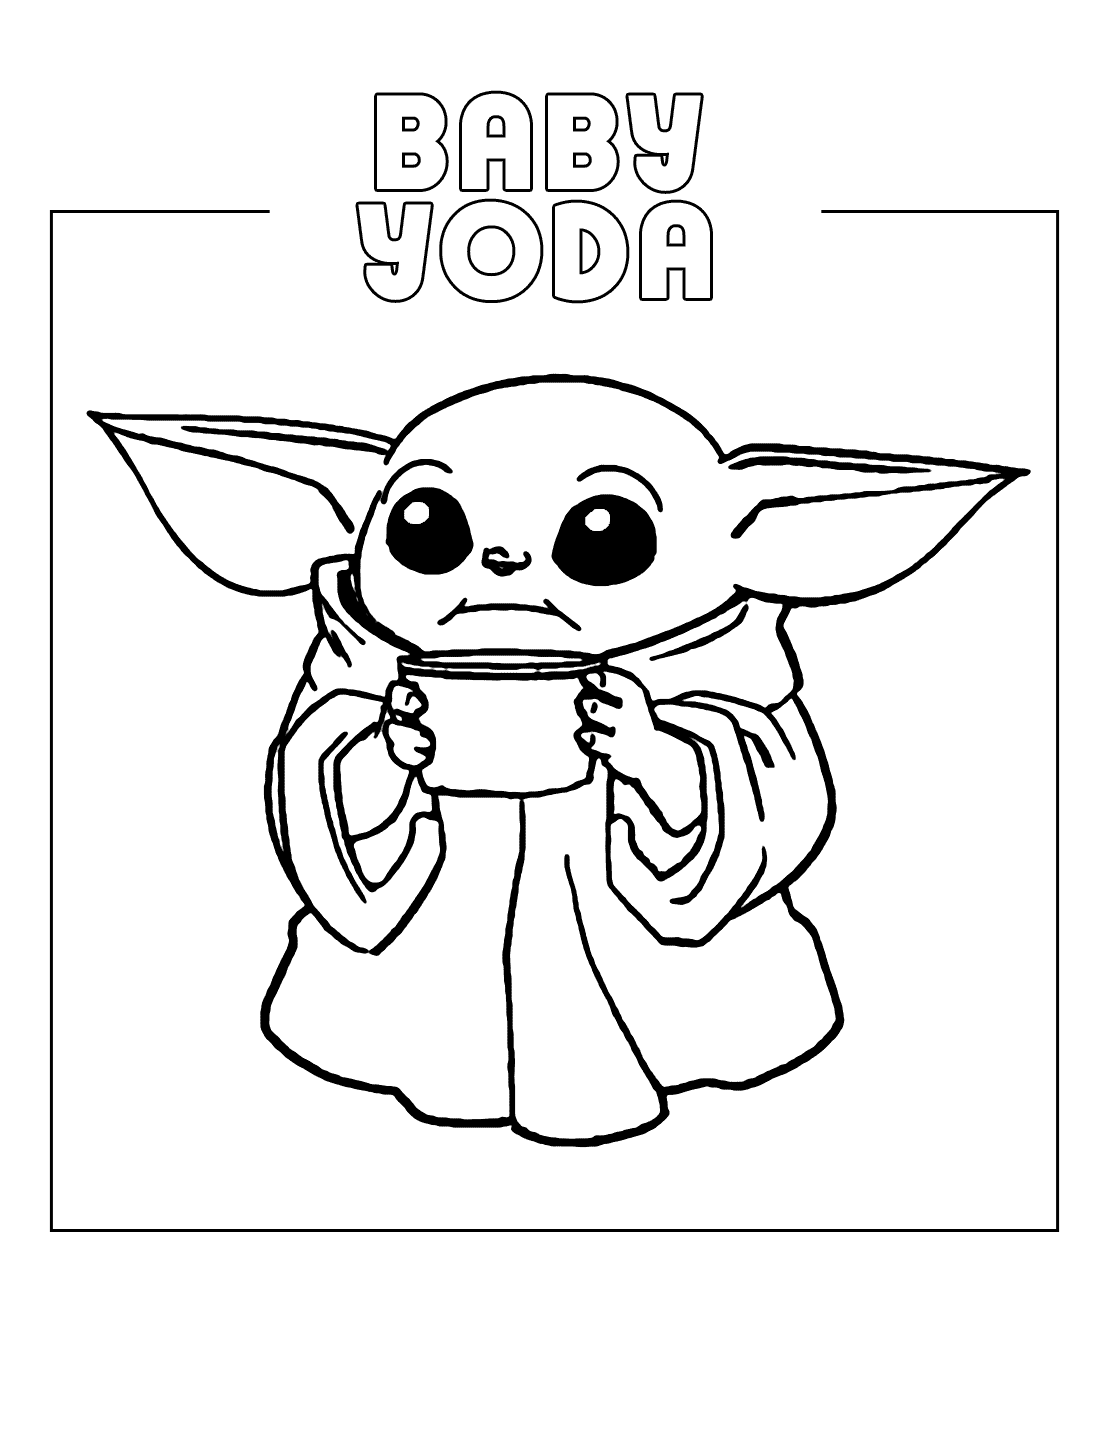 Baby Yoda Coloring Pages Coloring Rocks